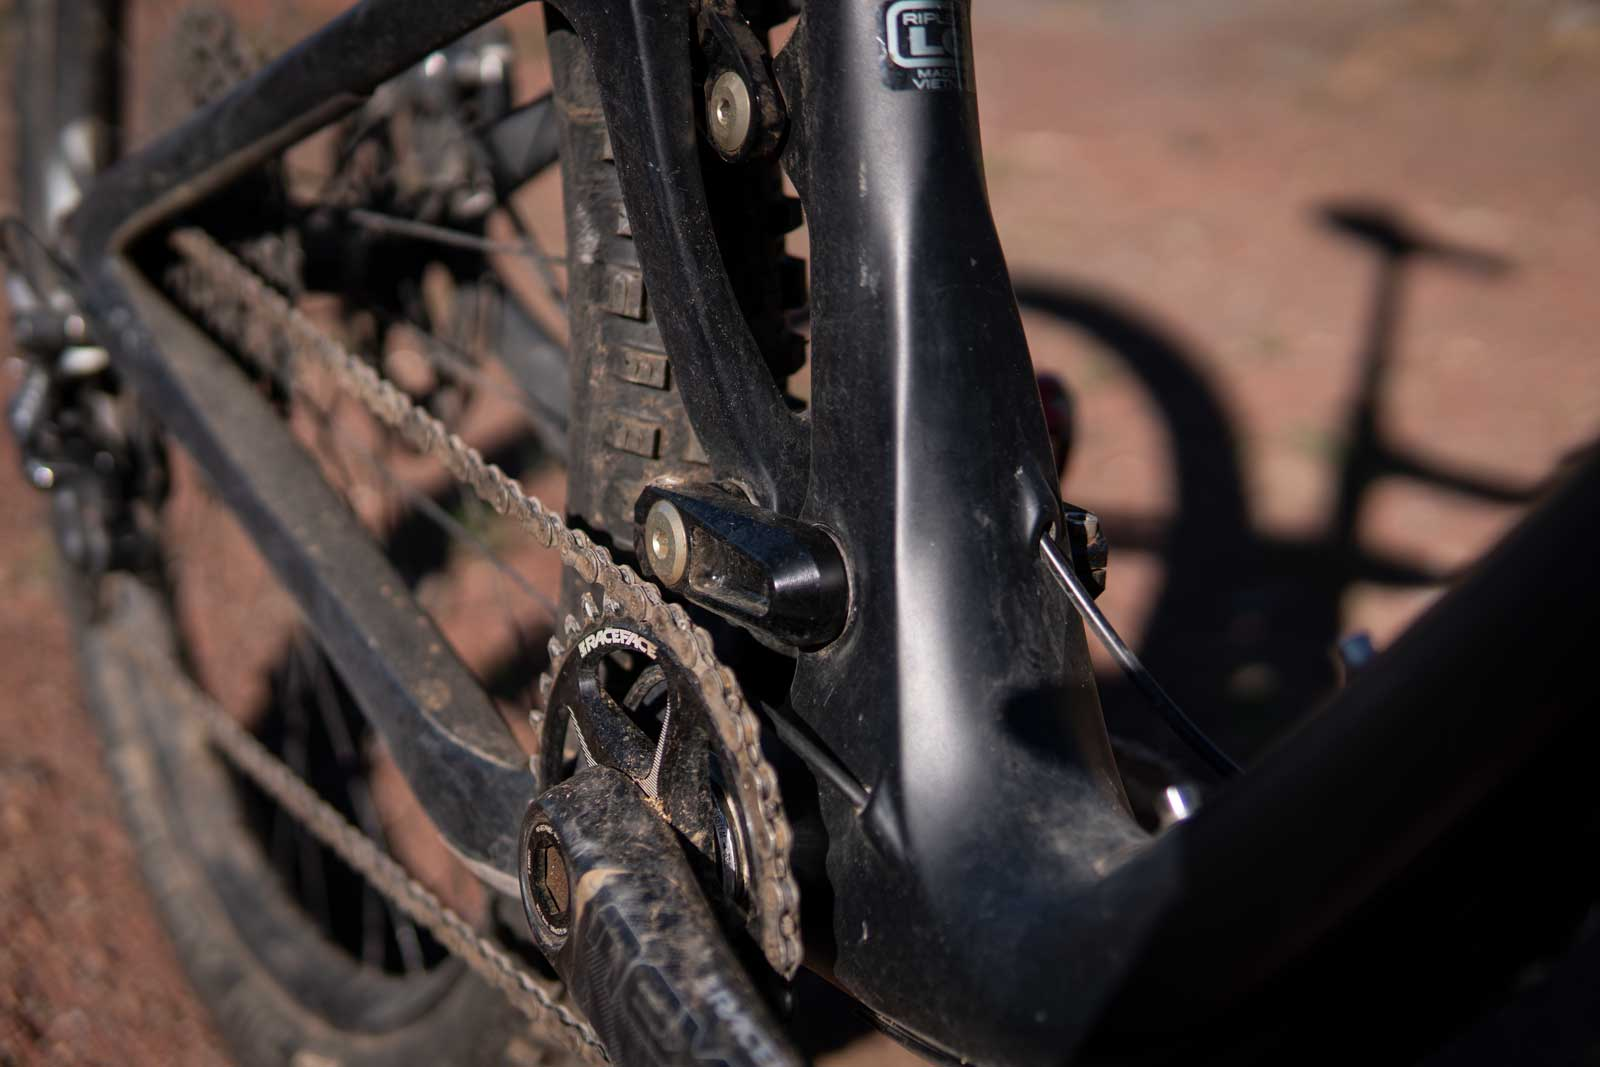 the Ibis Ripley V4 gear and frame